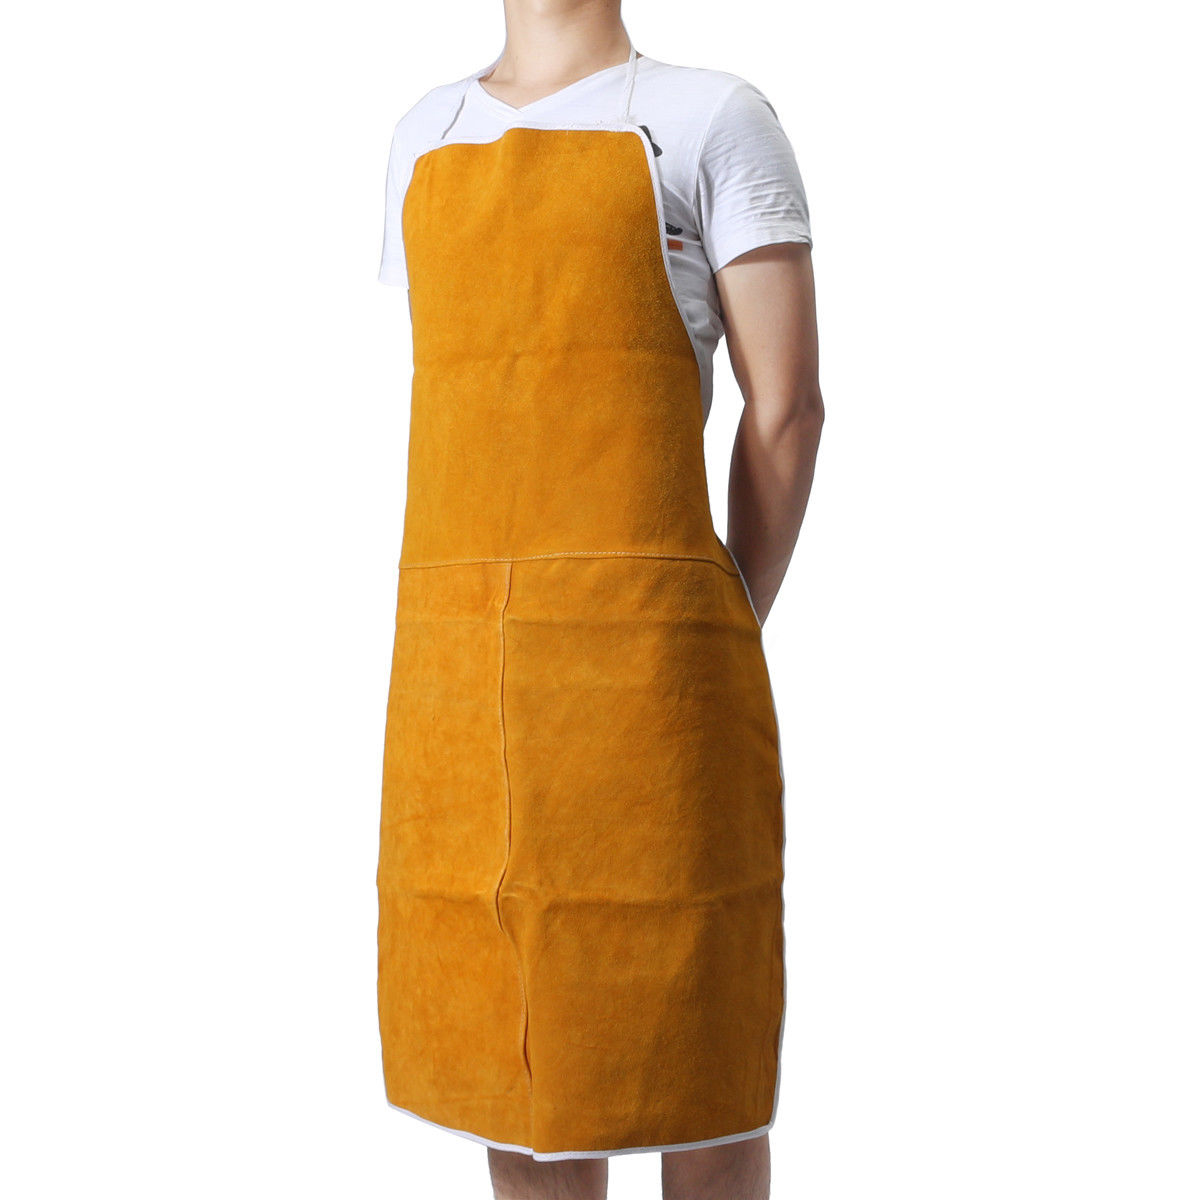 Designer High Quality Cowhide Welding Welders Aprons Work Safety Workwear Glaziers Blacksmith